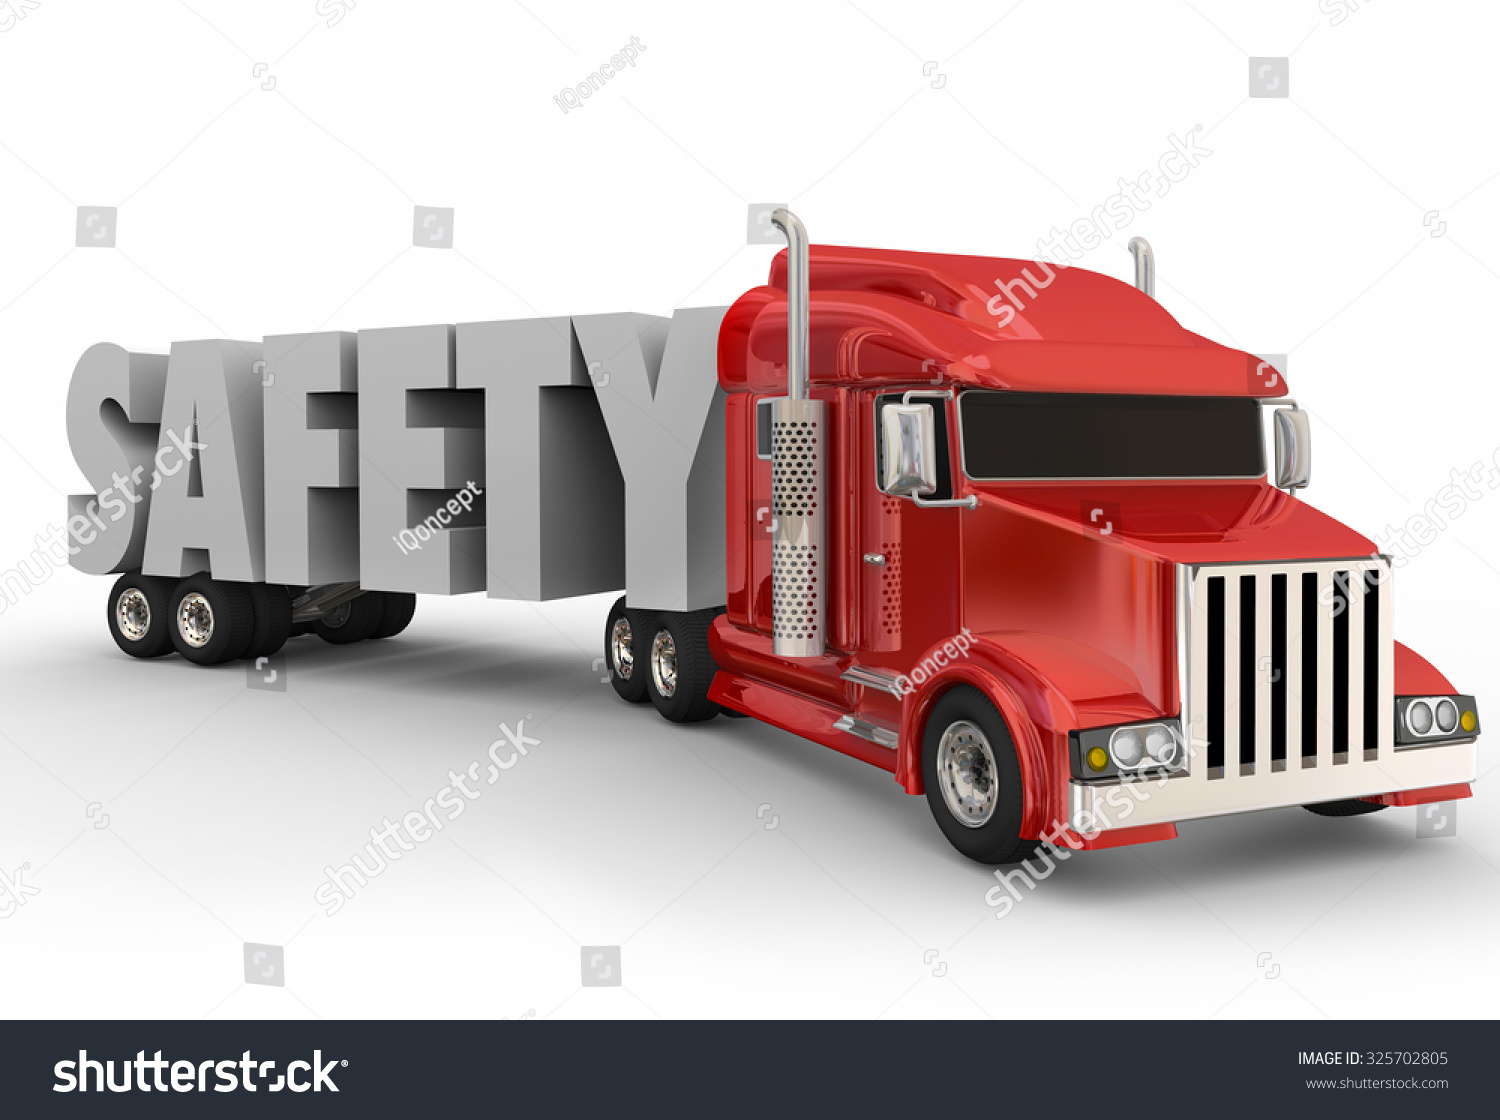 Trailer Safety : Safety d word on truck trailer stock illustration